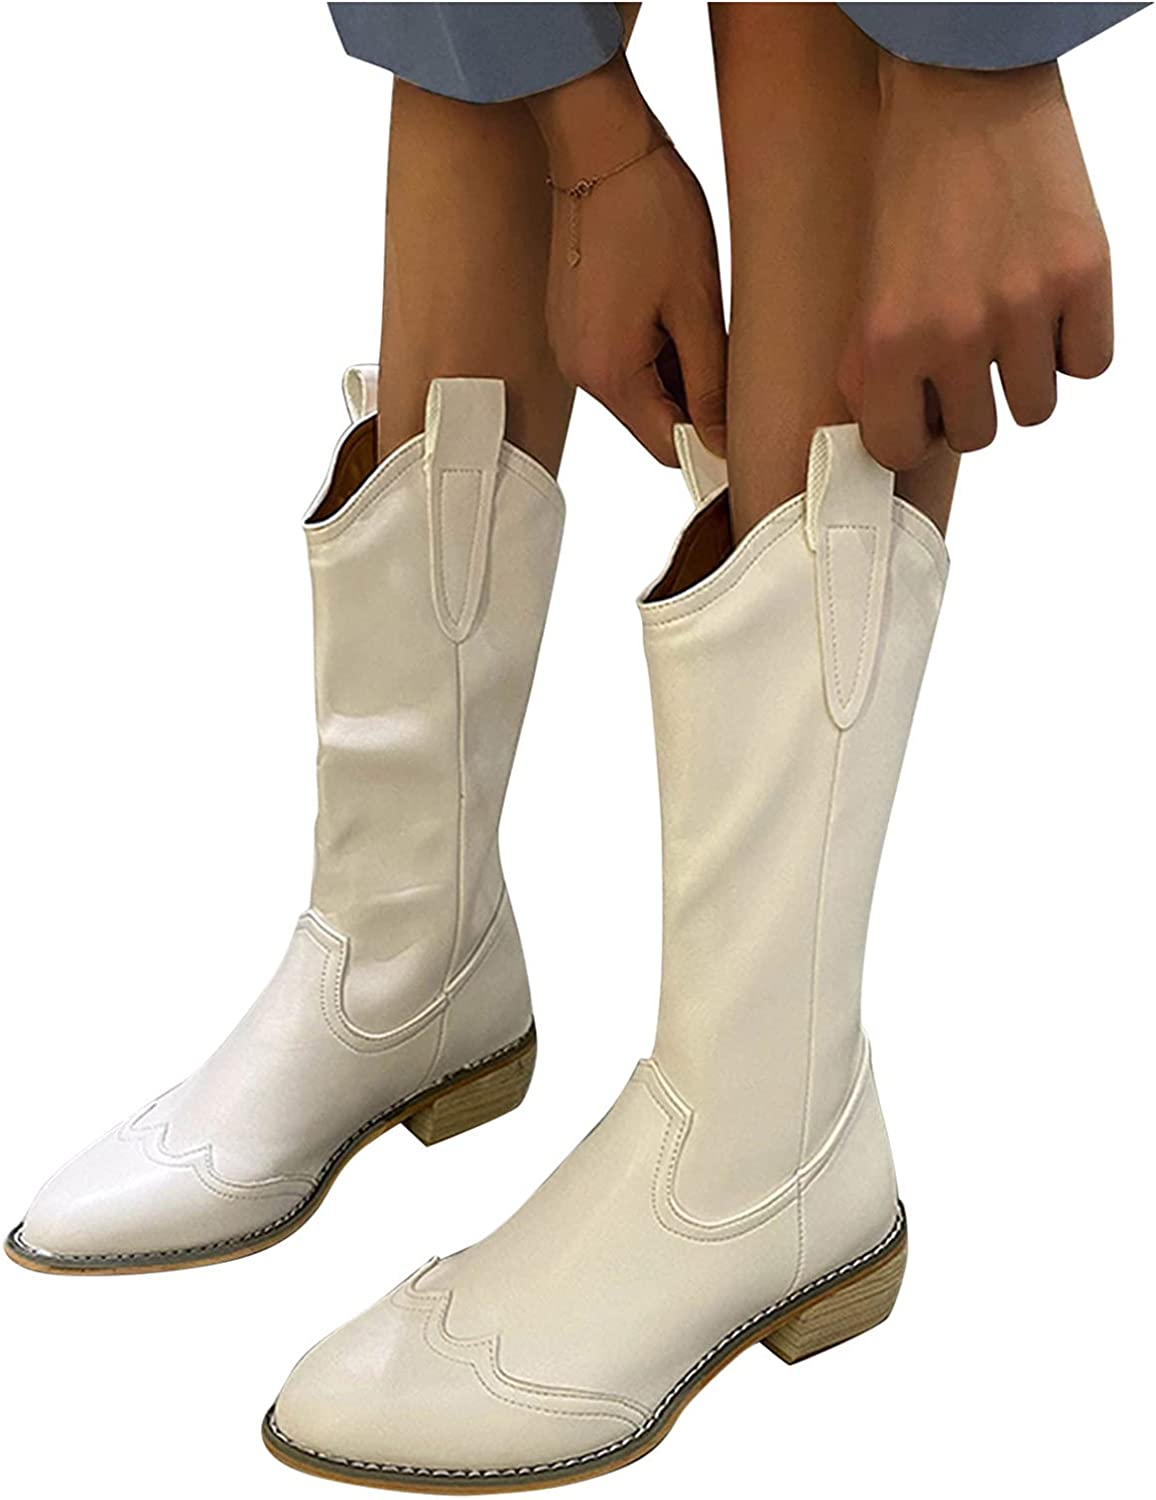 Aniywn Womens Point Toe Western Cowboy Boots Mid Calf Low Heel Wide Width Comfort Wide Calf Boot with Pull-Up Tabs